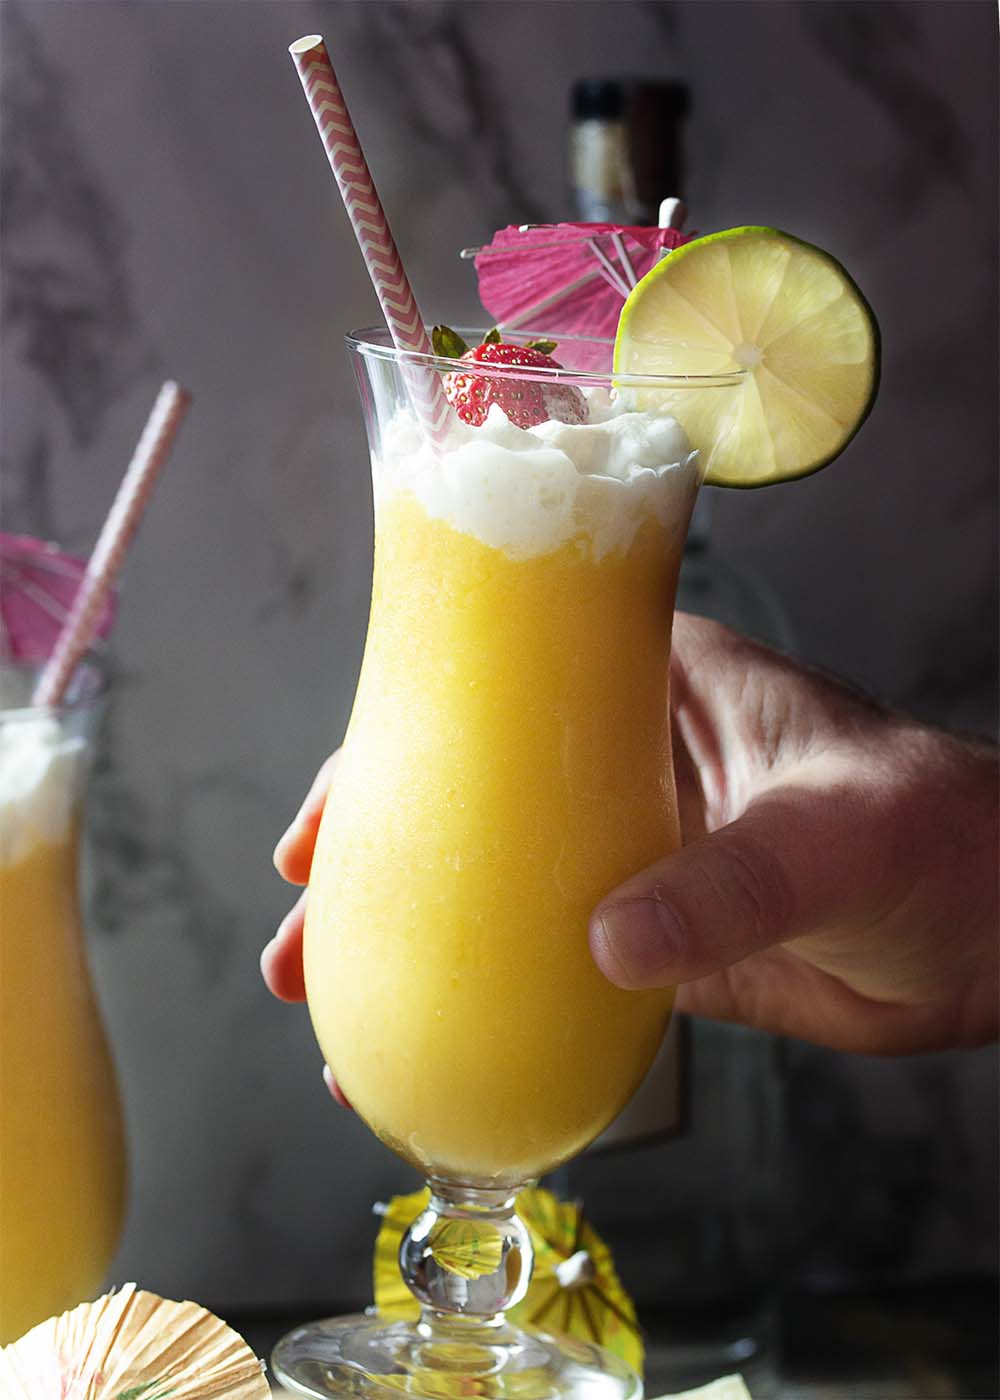 A hand lifting up a glass of mango daquiri garnished with strawberry and lime.